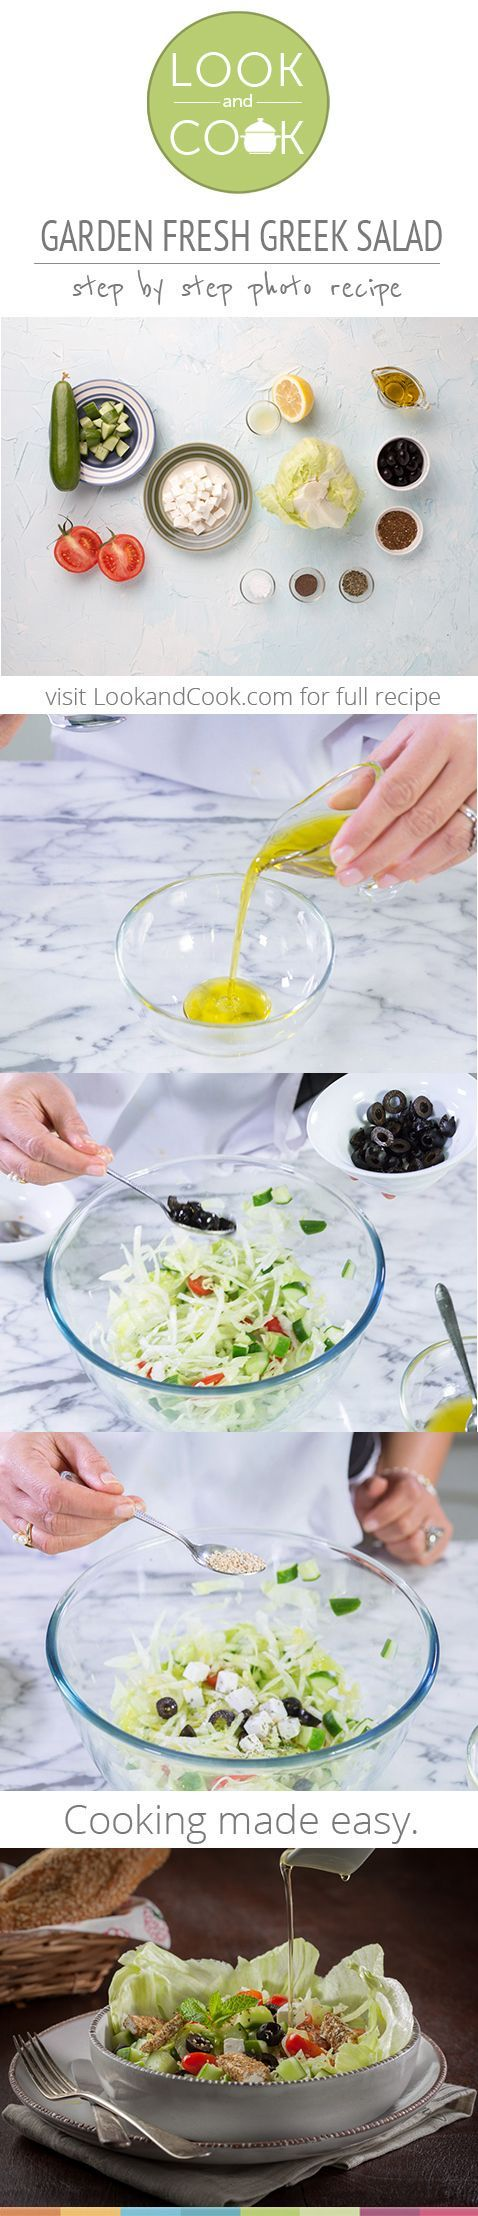 GARDEN FRESH GREEK SALAD RECIPE (LC14205) : This salad is a quick and easy to make healthy salad. The Zaatar and Feta cheese give it a good Mediterranean flavor.